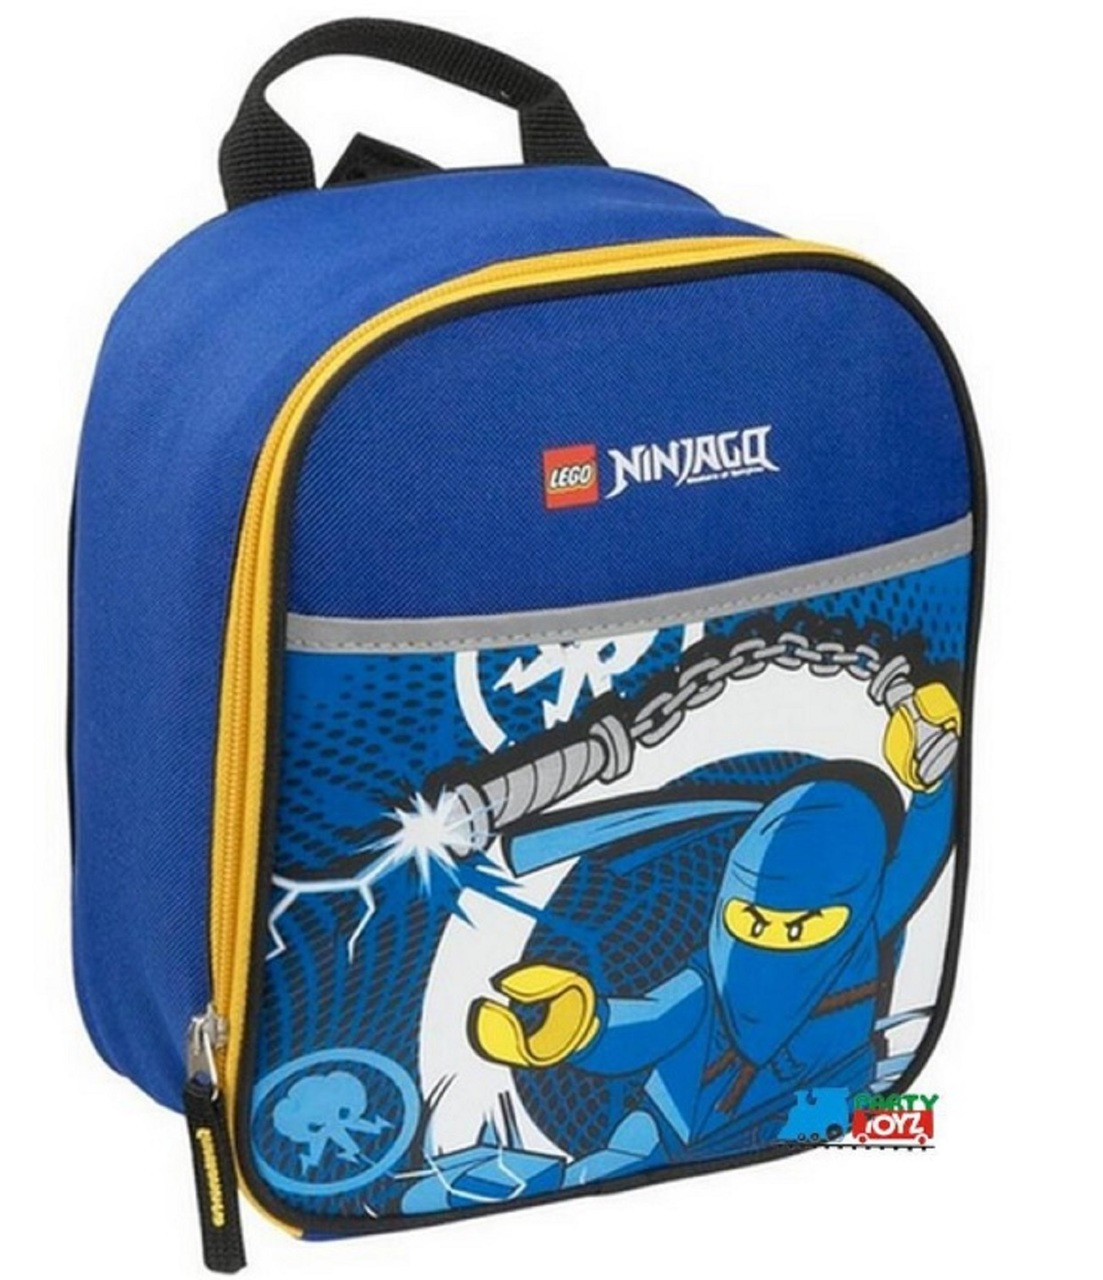 LEGO Ninjago Vertical Cloth Lunch Box - Jay/Blue Ninja